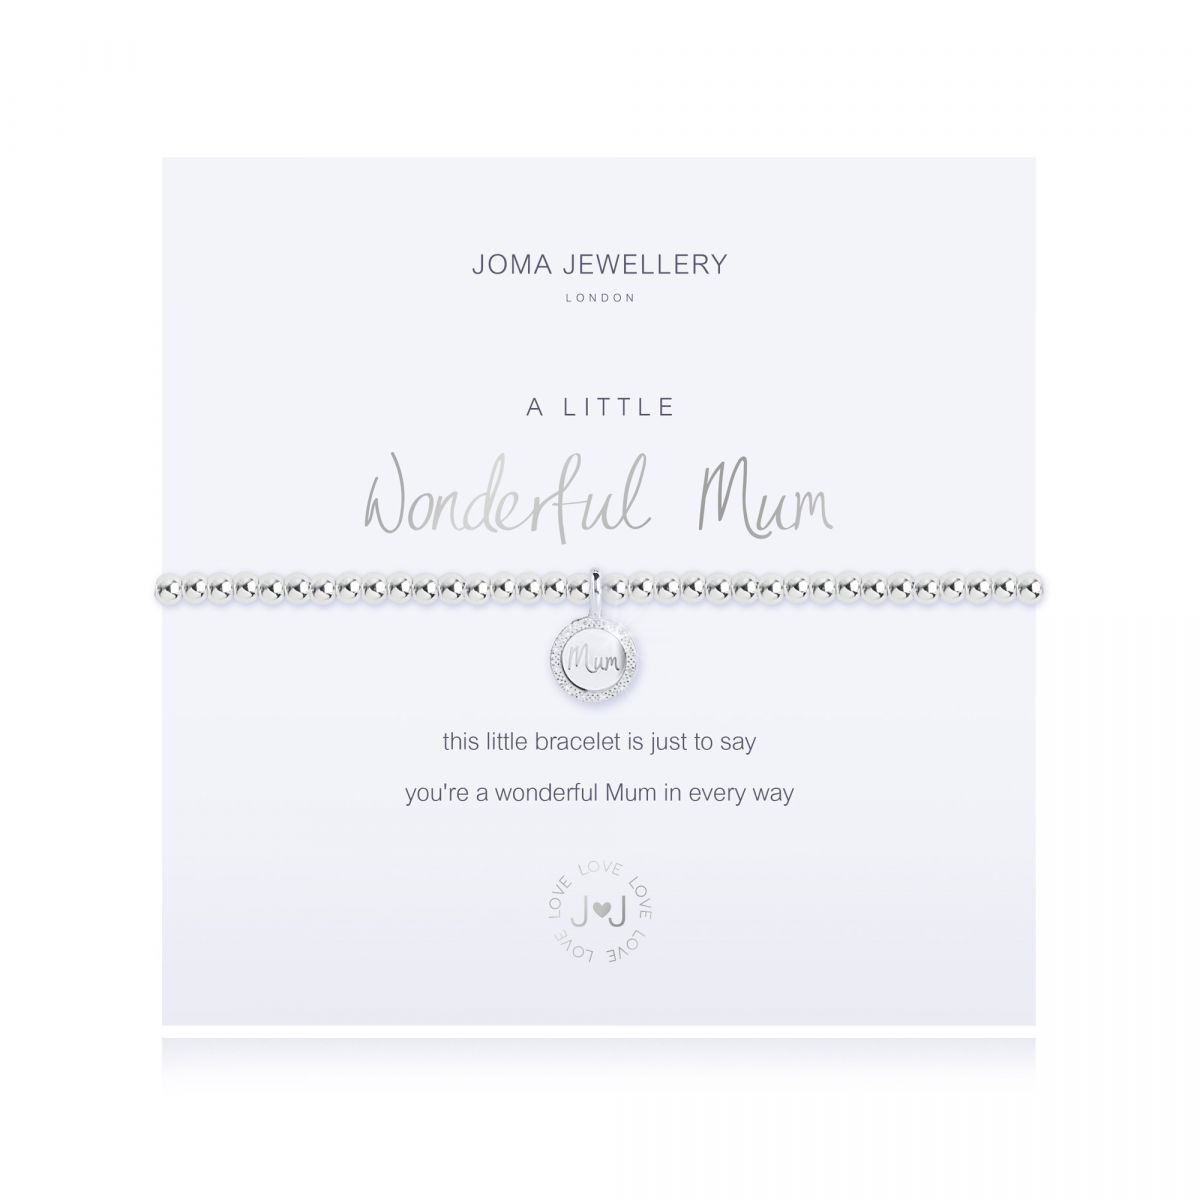 Joma A Little 'Wonderful Mum' Bracelet